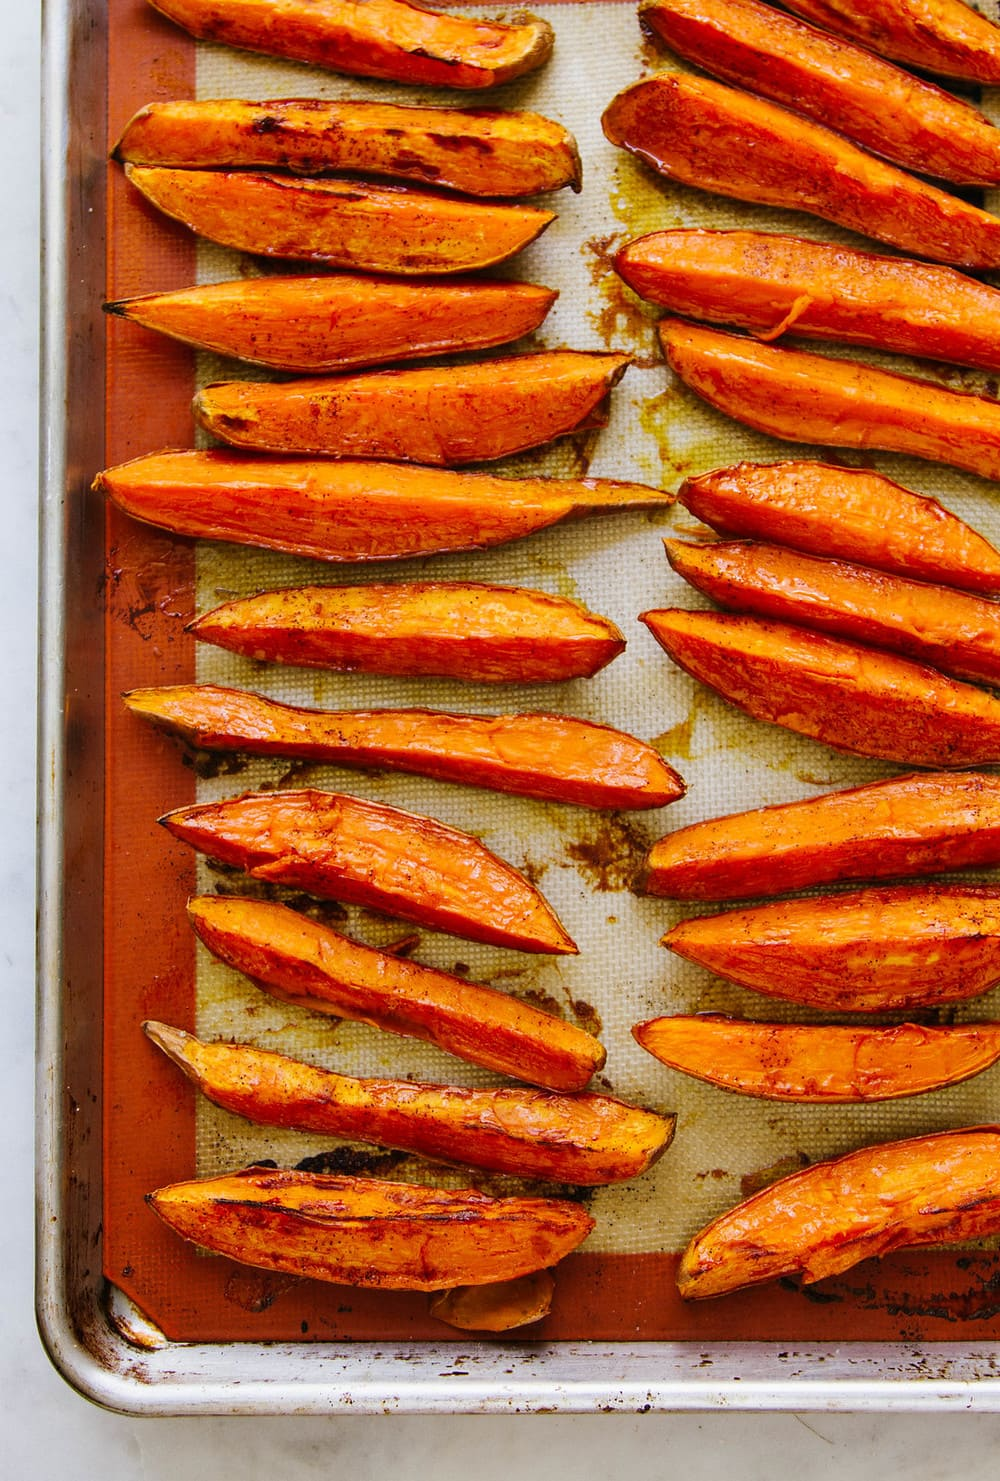 top down view of freshly baked sweet potatos on a rimmed baking sheet just pulled from the oven